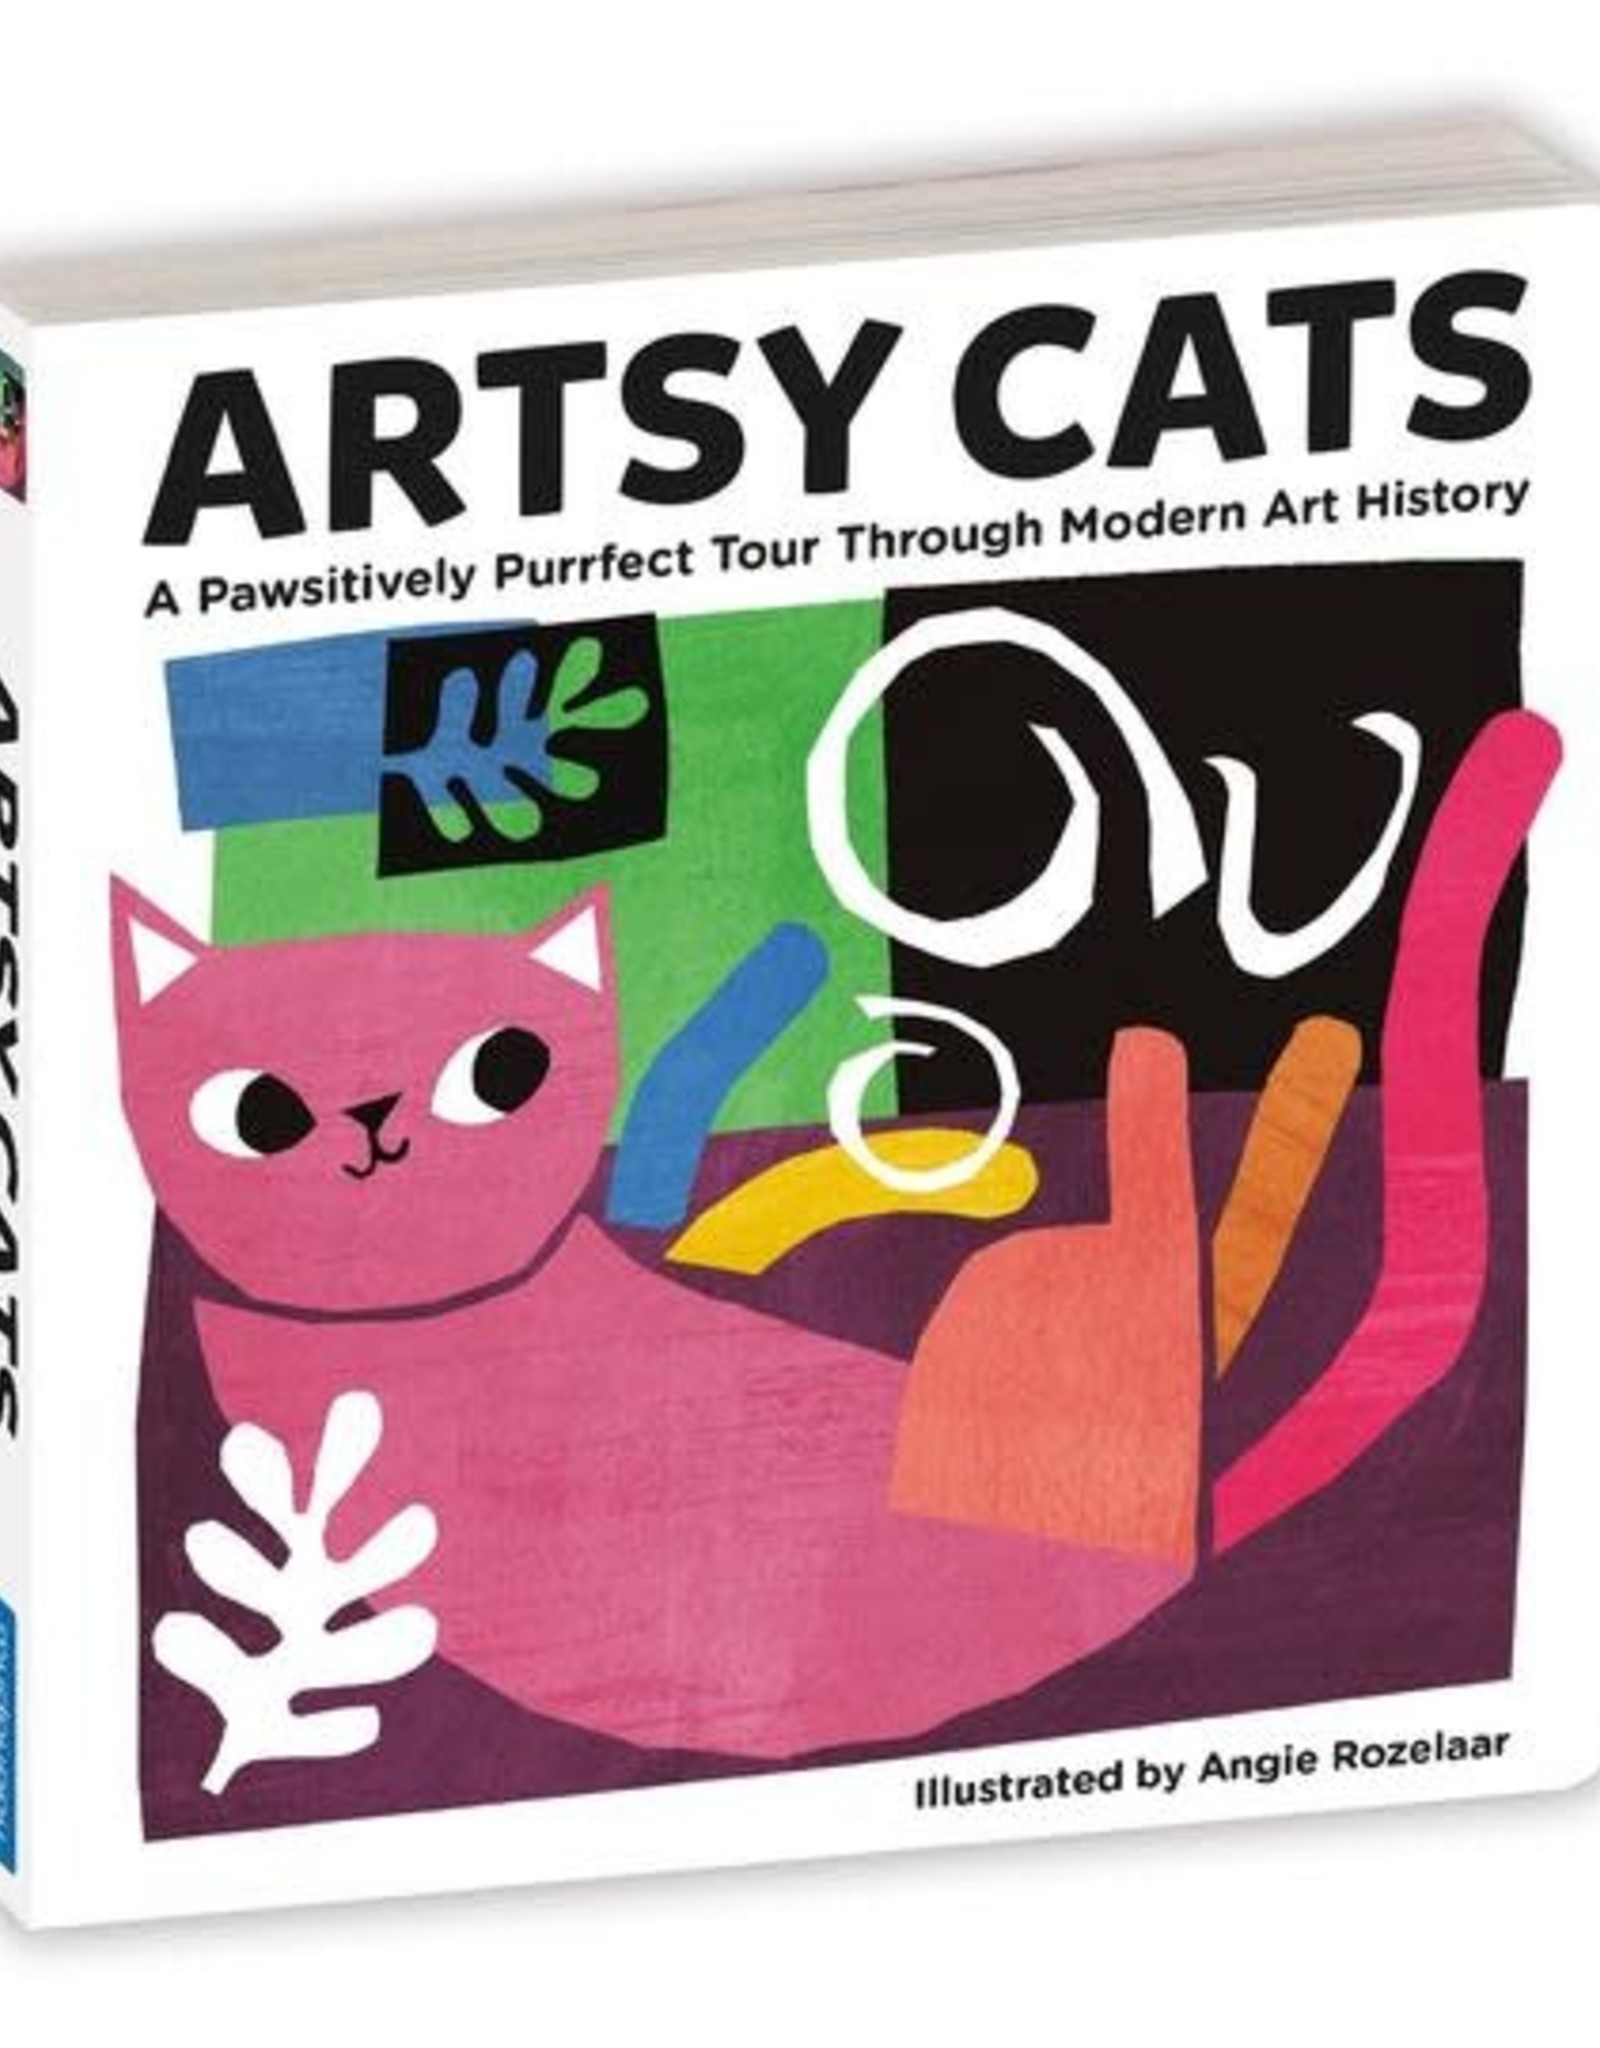 Artsy Cats, Illustrated by Angie Rozelaar